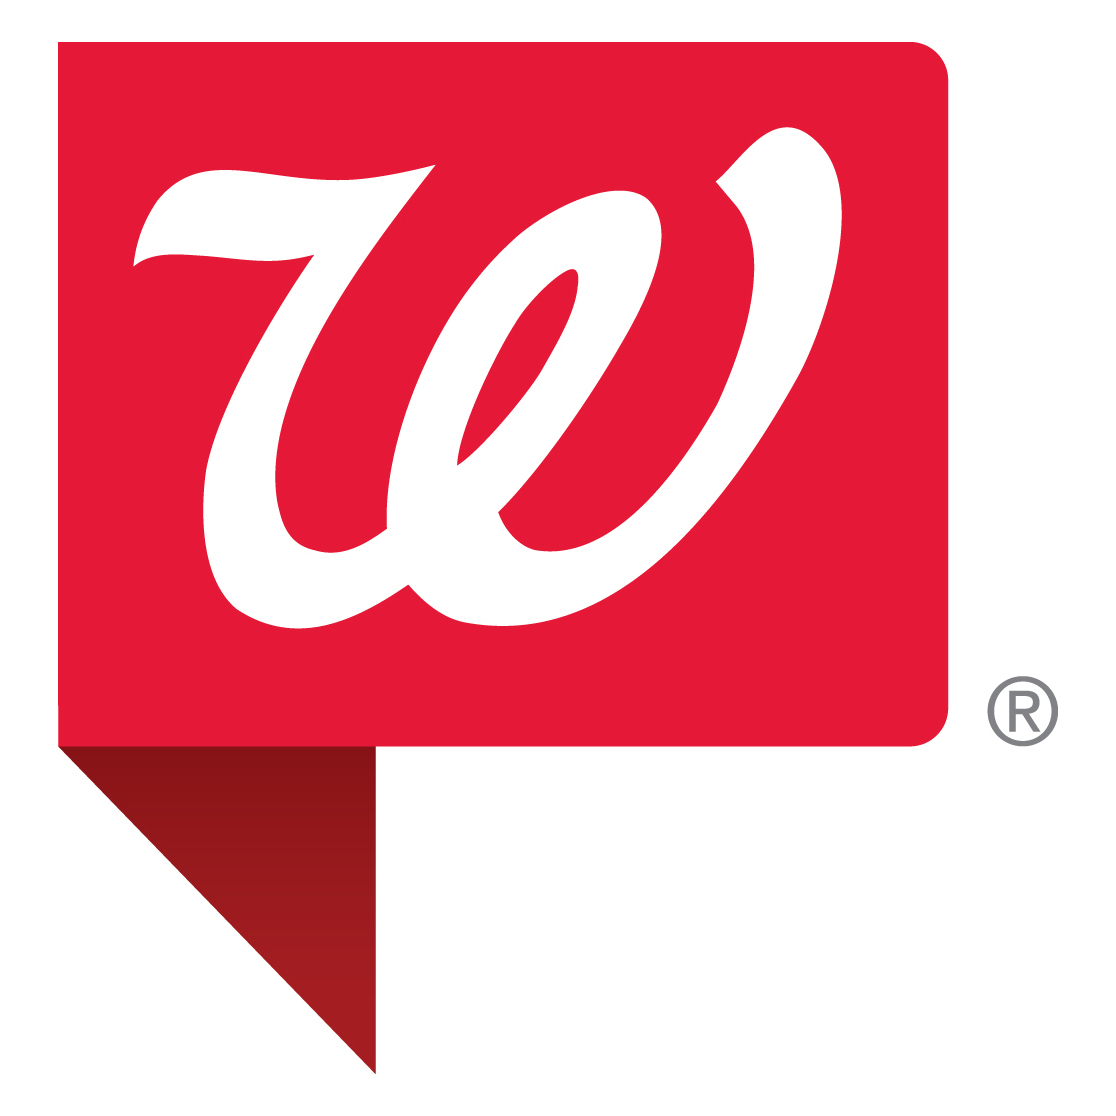 Walgreens - Belleville, NJ - Pharmacist